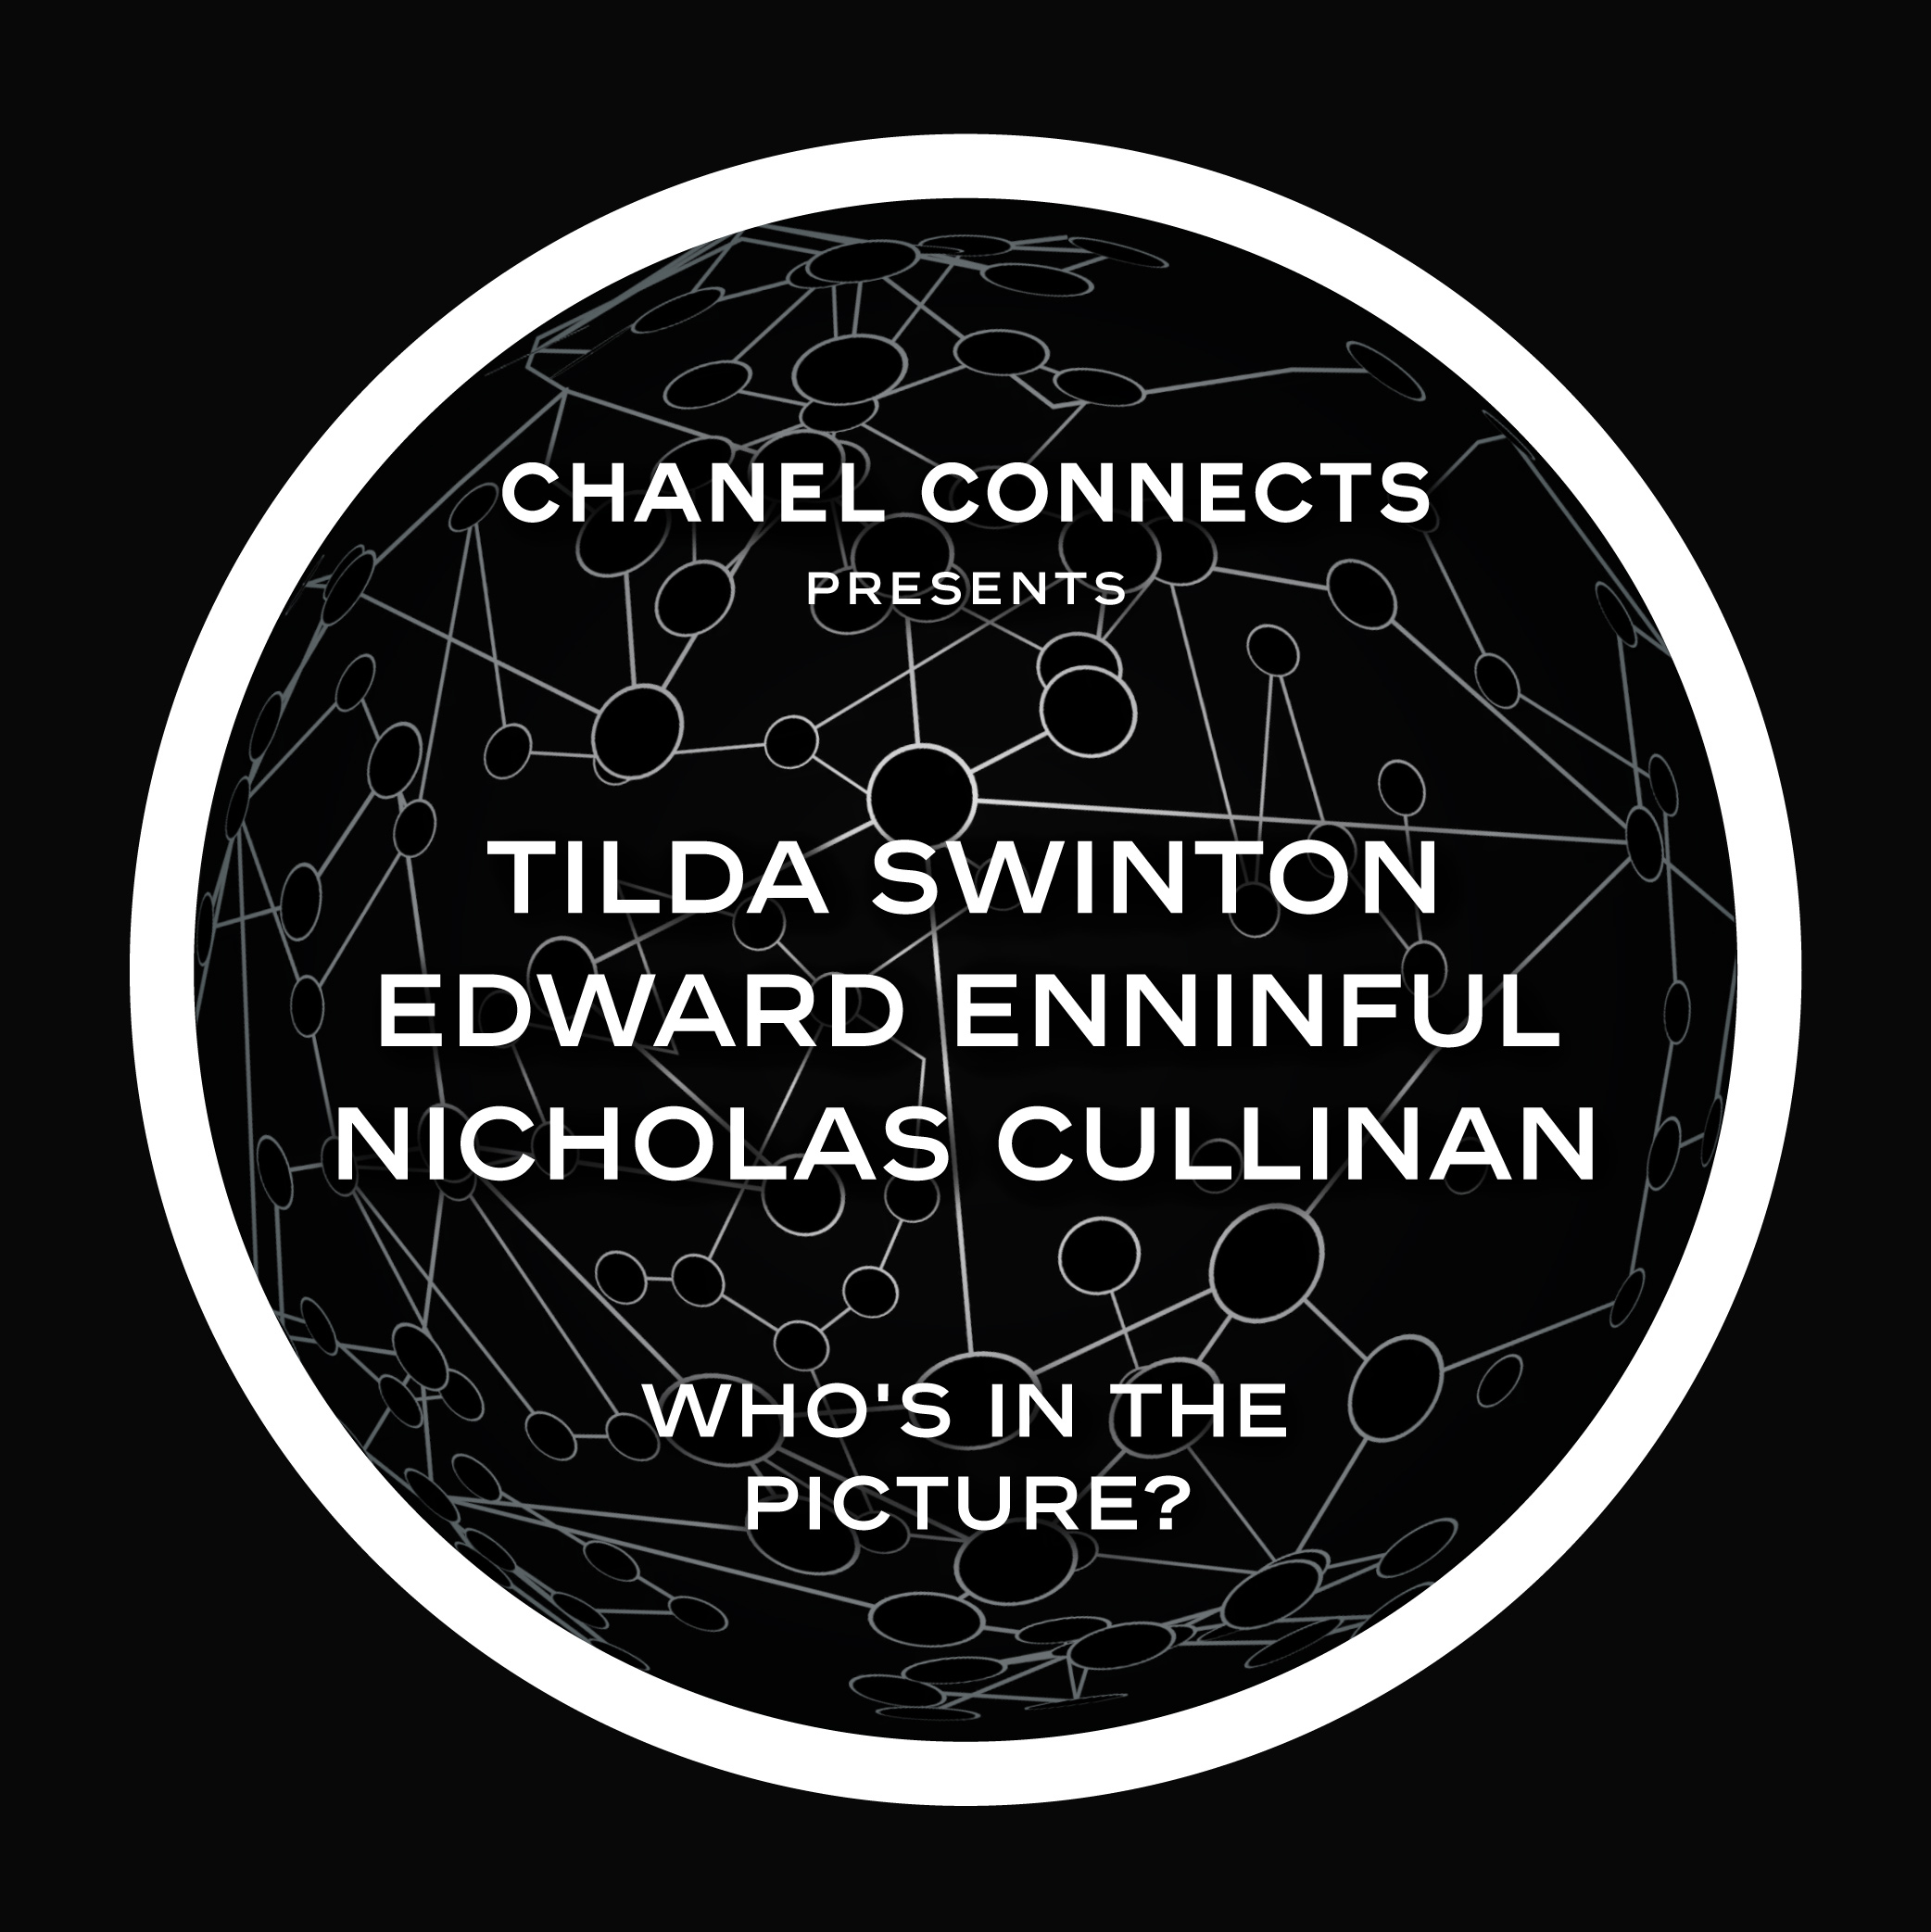 Chanel Connects is a new podcast series that will form part of 3.55 by Chanel.